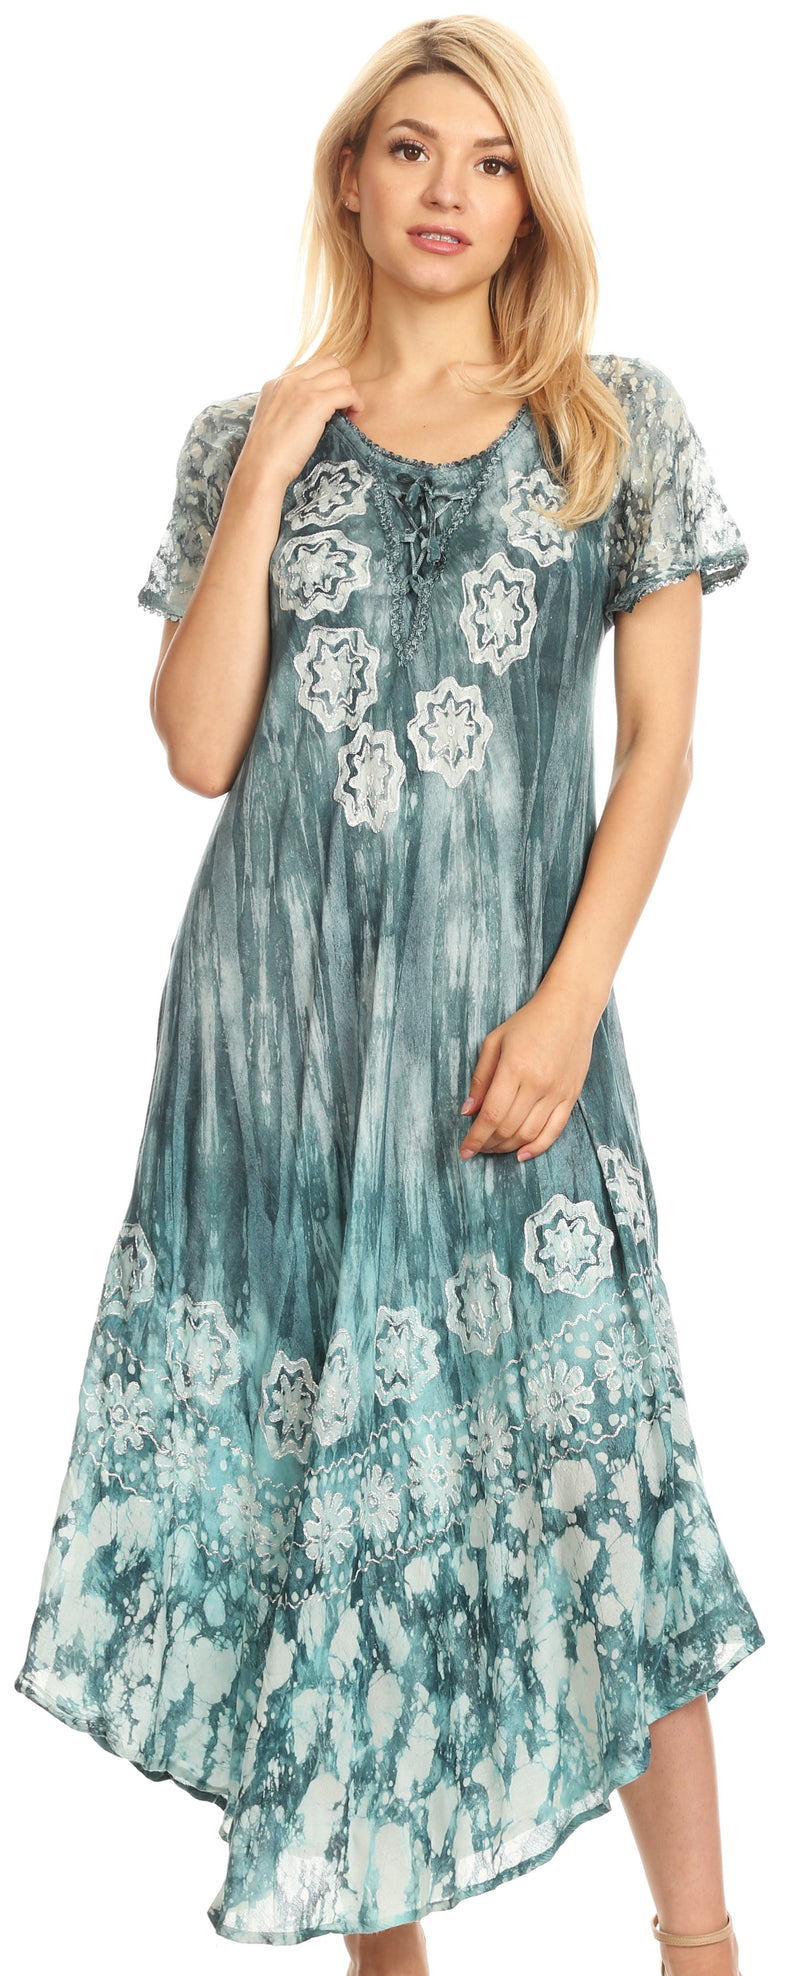 group-Sky gray (Sakkas Sofia Women's Flowy Summer Maxi Beach Dress Tie-dye w/Batik & Short Sleeves)